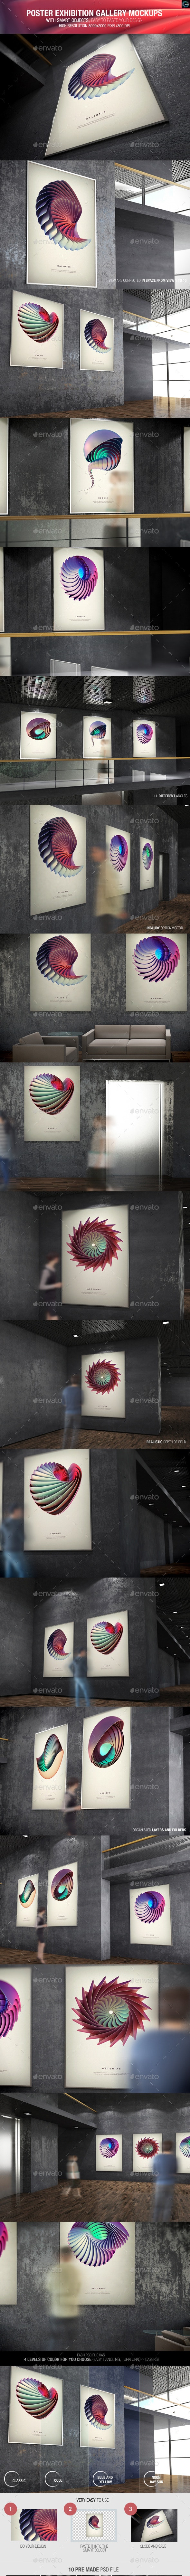 Poster Exhibition Gallery Mockups - Posters Print